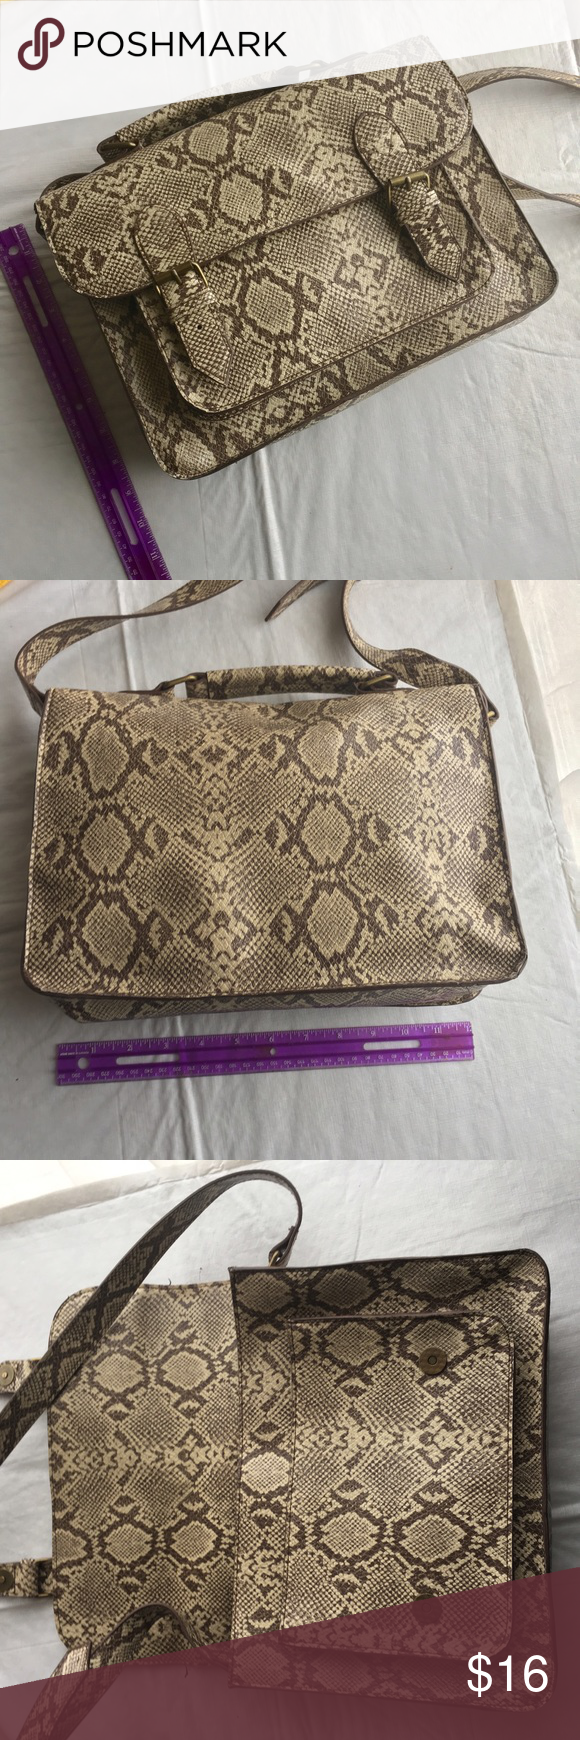 BDG Snakeskin satchel Magnetic closure with zip pocket and cell phone pocket inside. Super good condition, very little to no signs of wear. Urban Outfitters Bags Satchels